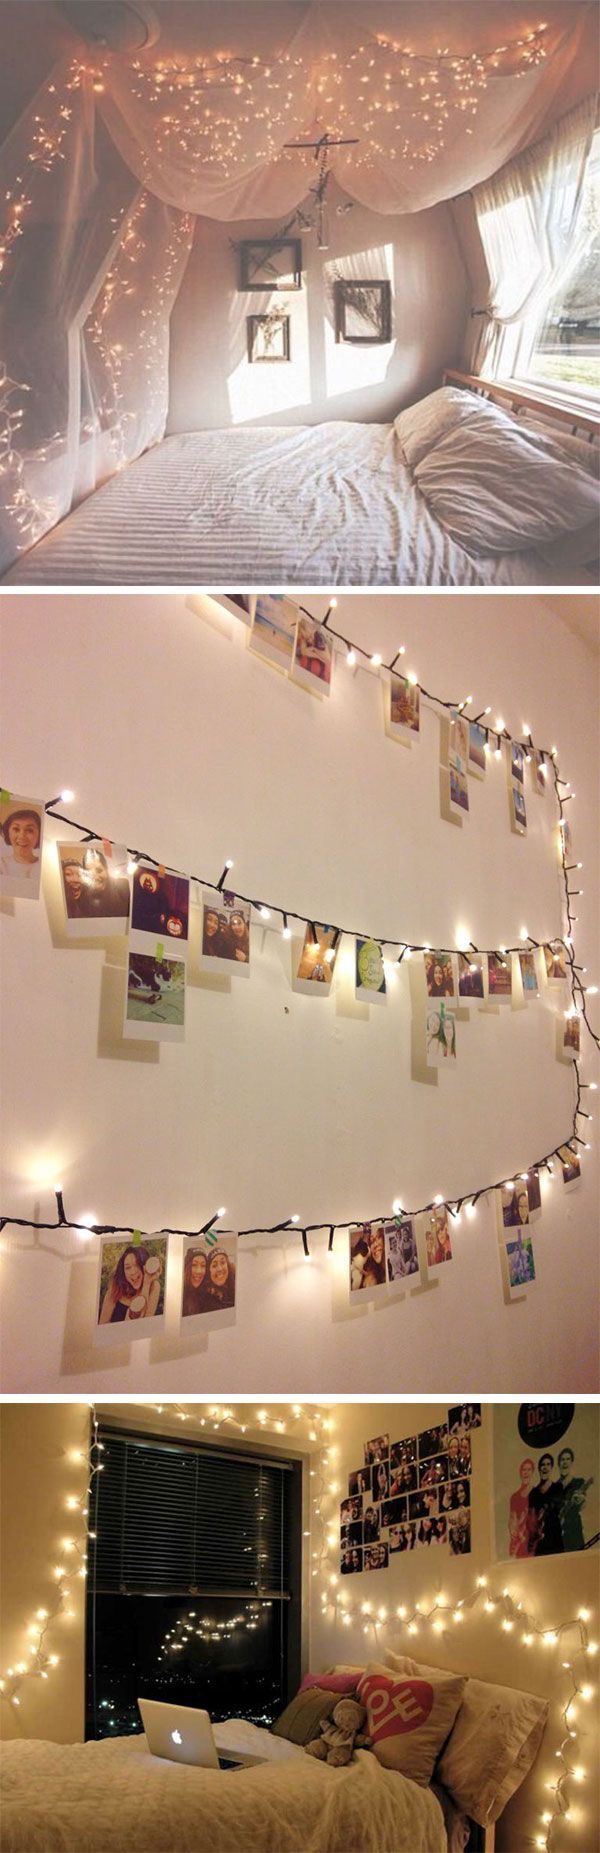 Cool bedroom ideas for teenage girls tumblr - 13 Ways To Use Fairy Lights To Make Your Home Look Magical Room Decor Diy Lightsdiy Home Decor For Teens Tumblr Girls